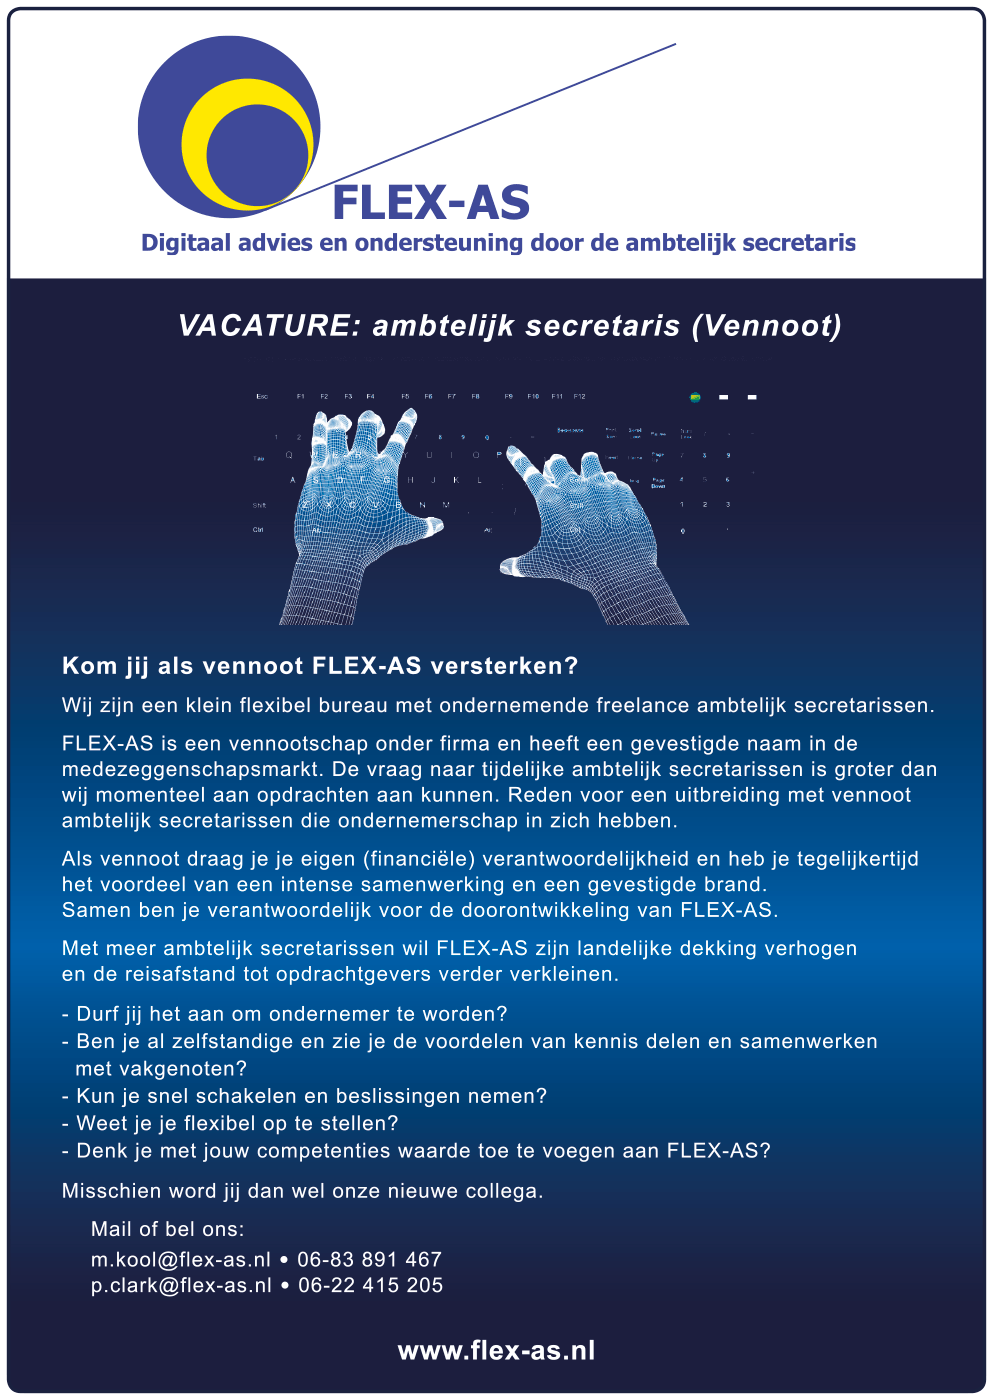 FLEX-AS: vacature ambtelijk secretaris (vennoot)